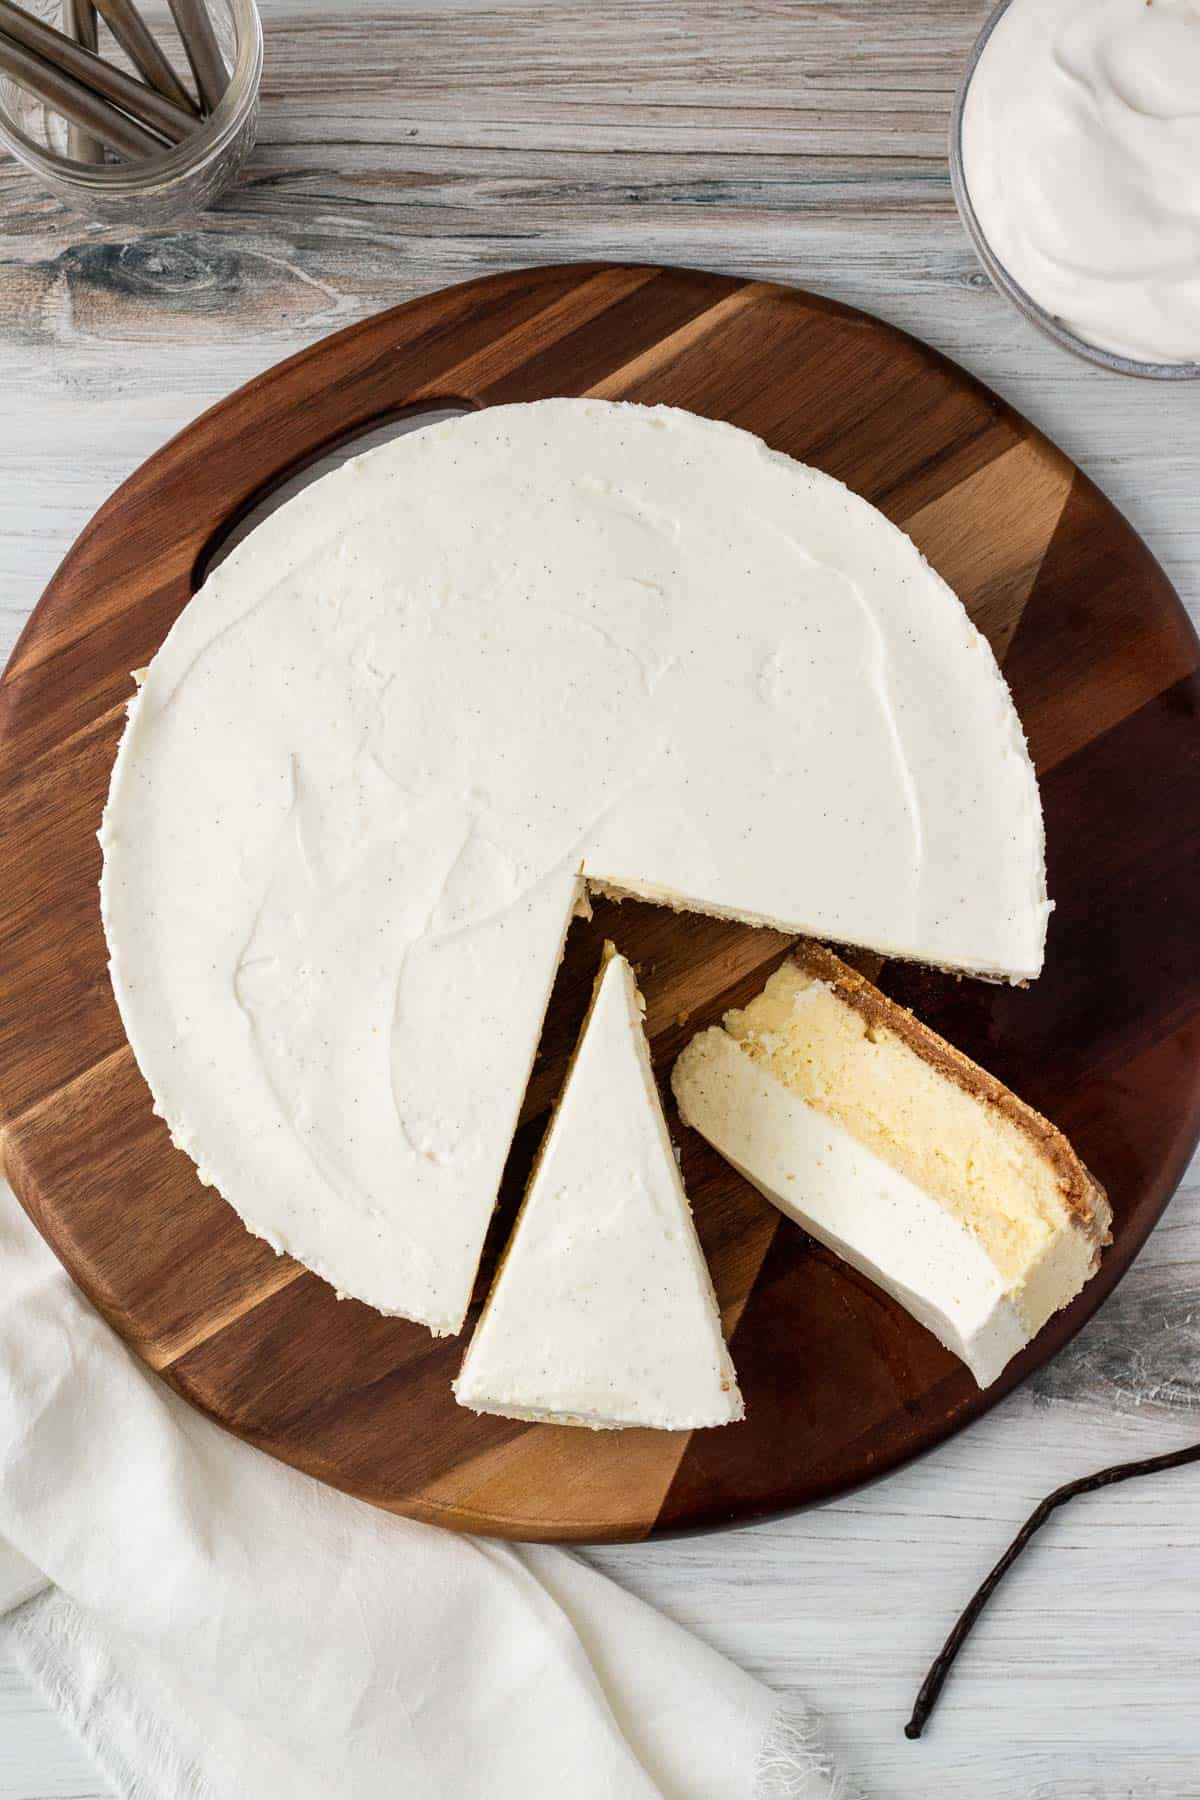 overhead view of a vanilla bean cheesecake with 2 slices cut out sitting on a round wooden board